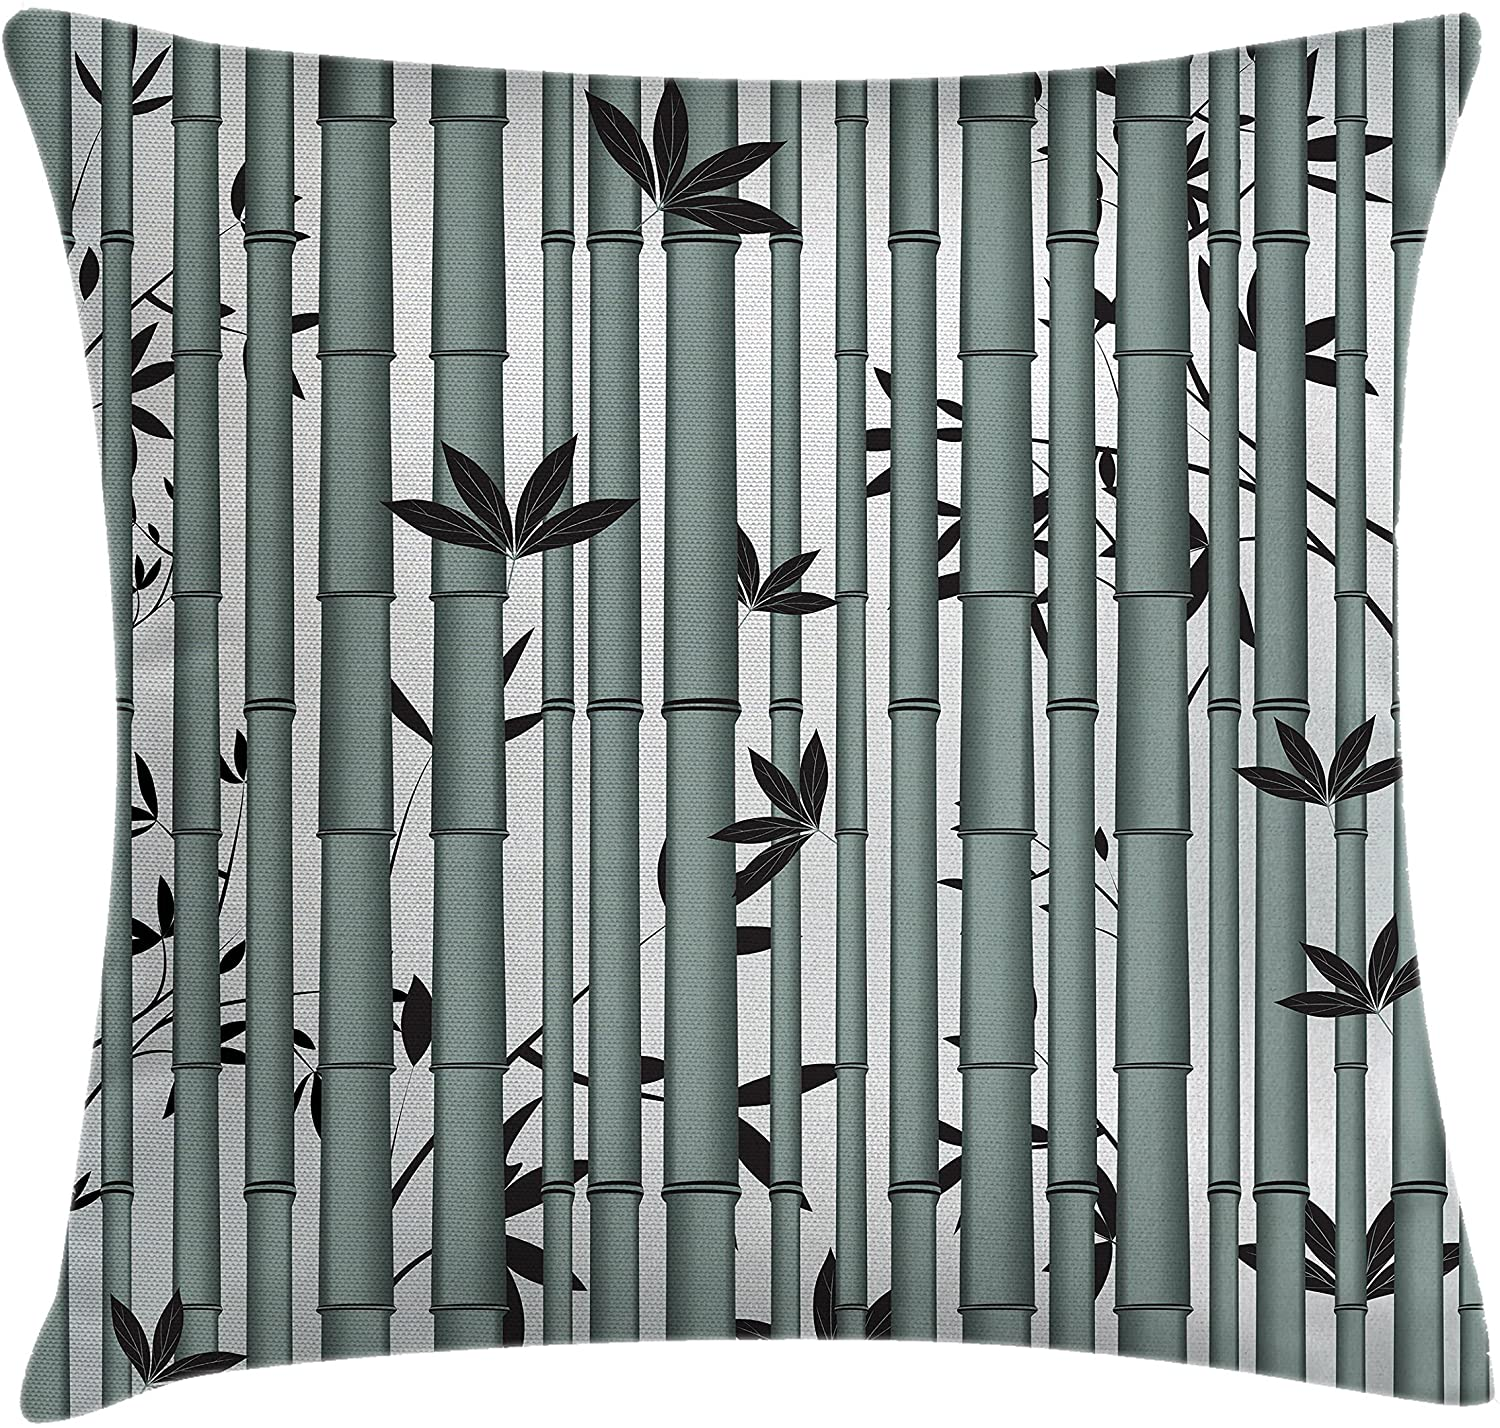 Ambesonne Nature Throw Pillow Cushion Cover, Tree Flower Wildlife Panda Food Bamboo with Leaf and Branches Print, Decorative Square Accent Pillow Case, 16 X 16, Bluegrey Dimgrey